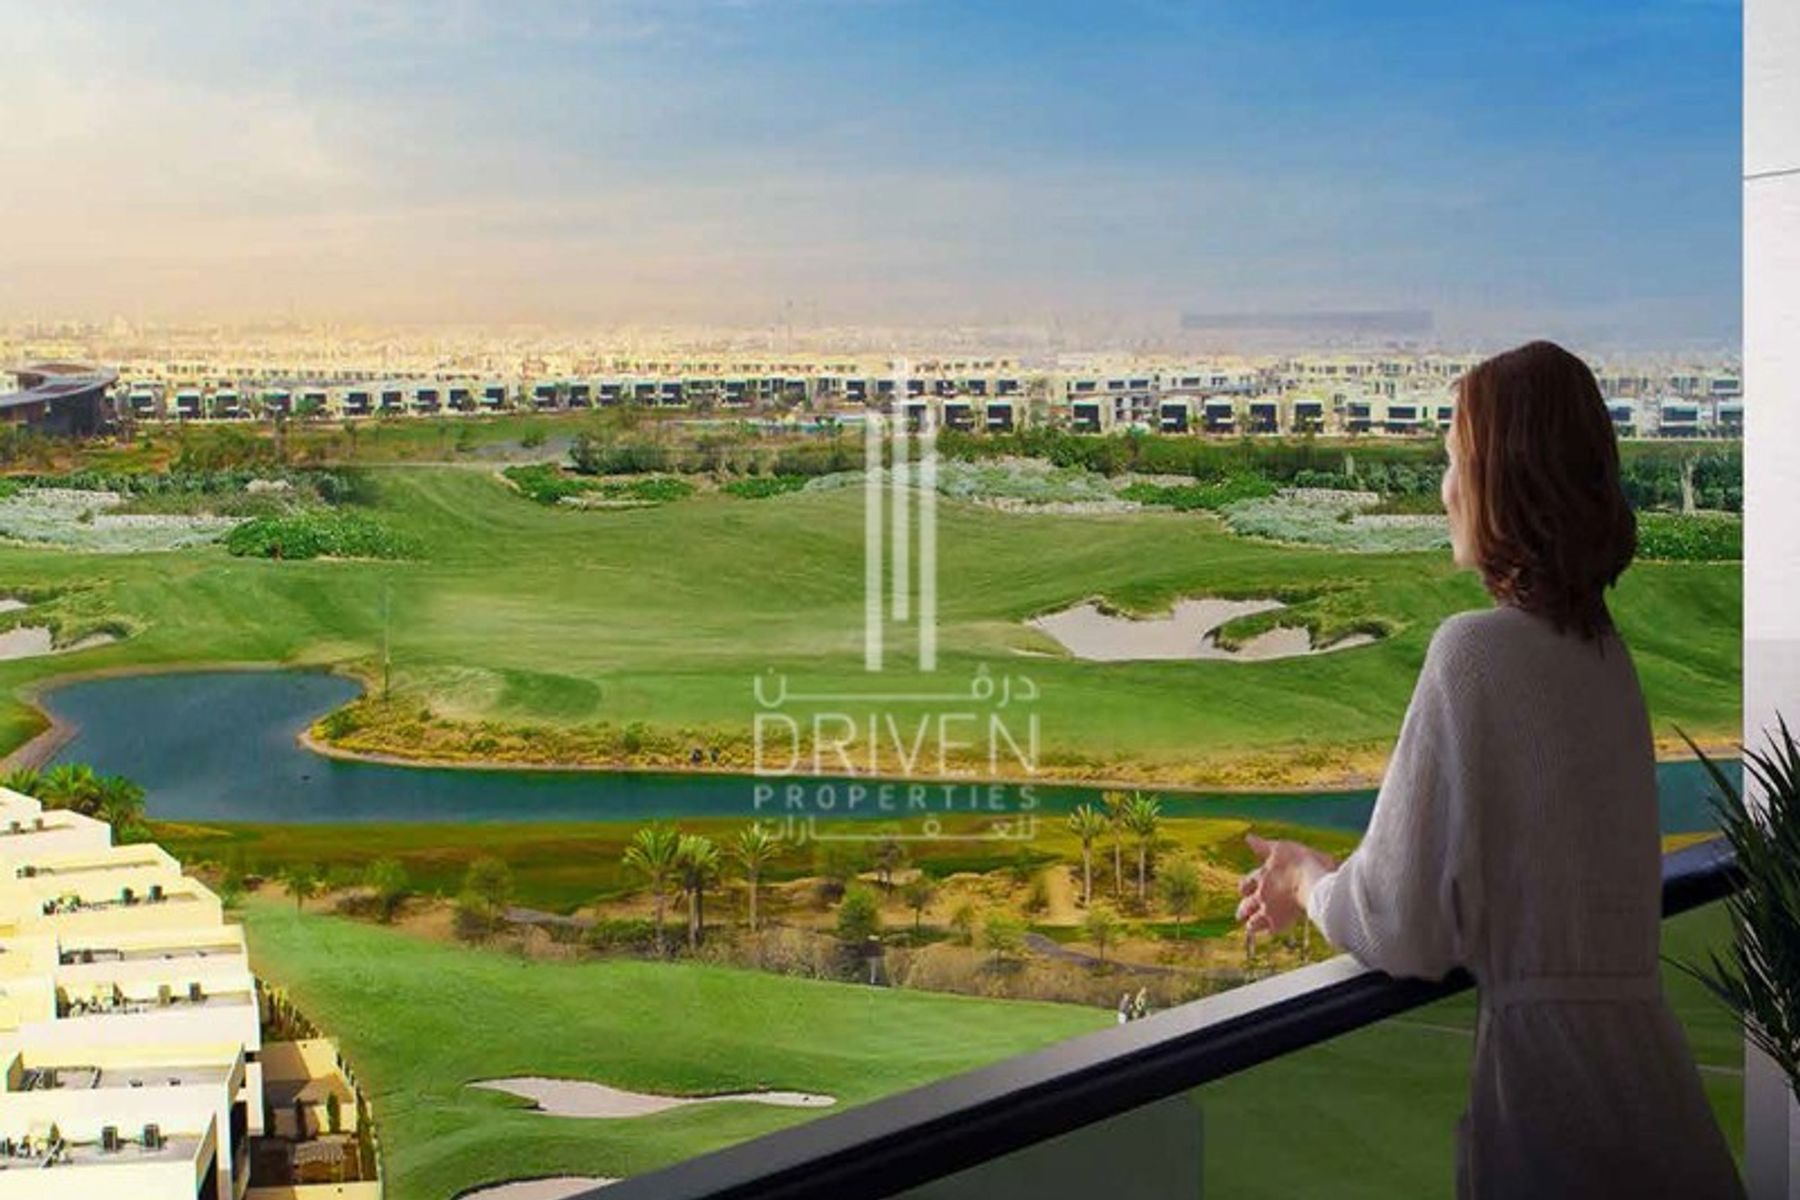 1 BR APT WITH STUNNING GOLF COURSE VIEWS